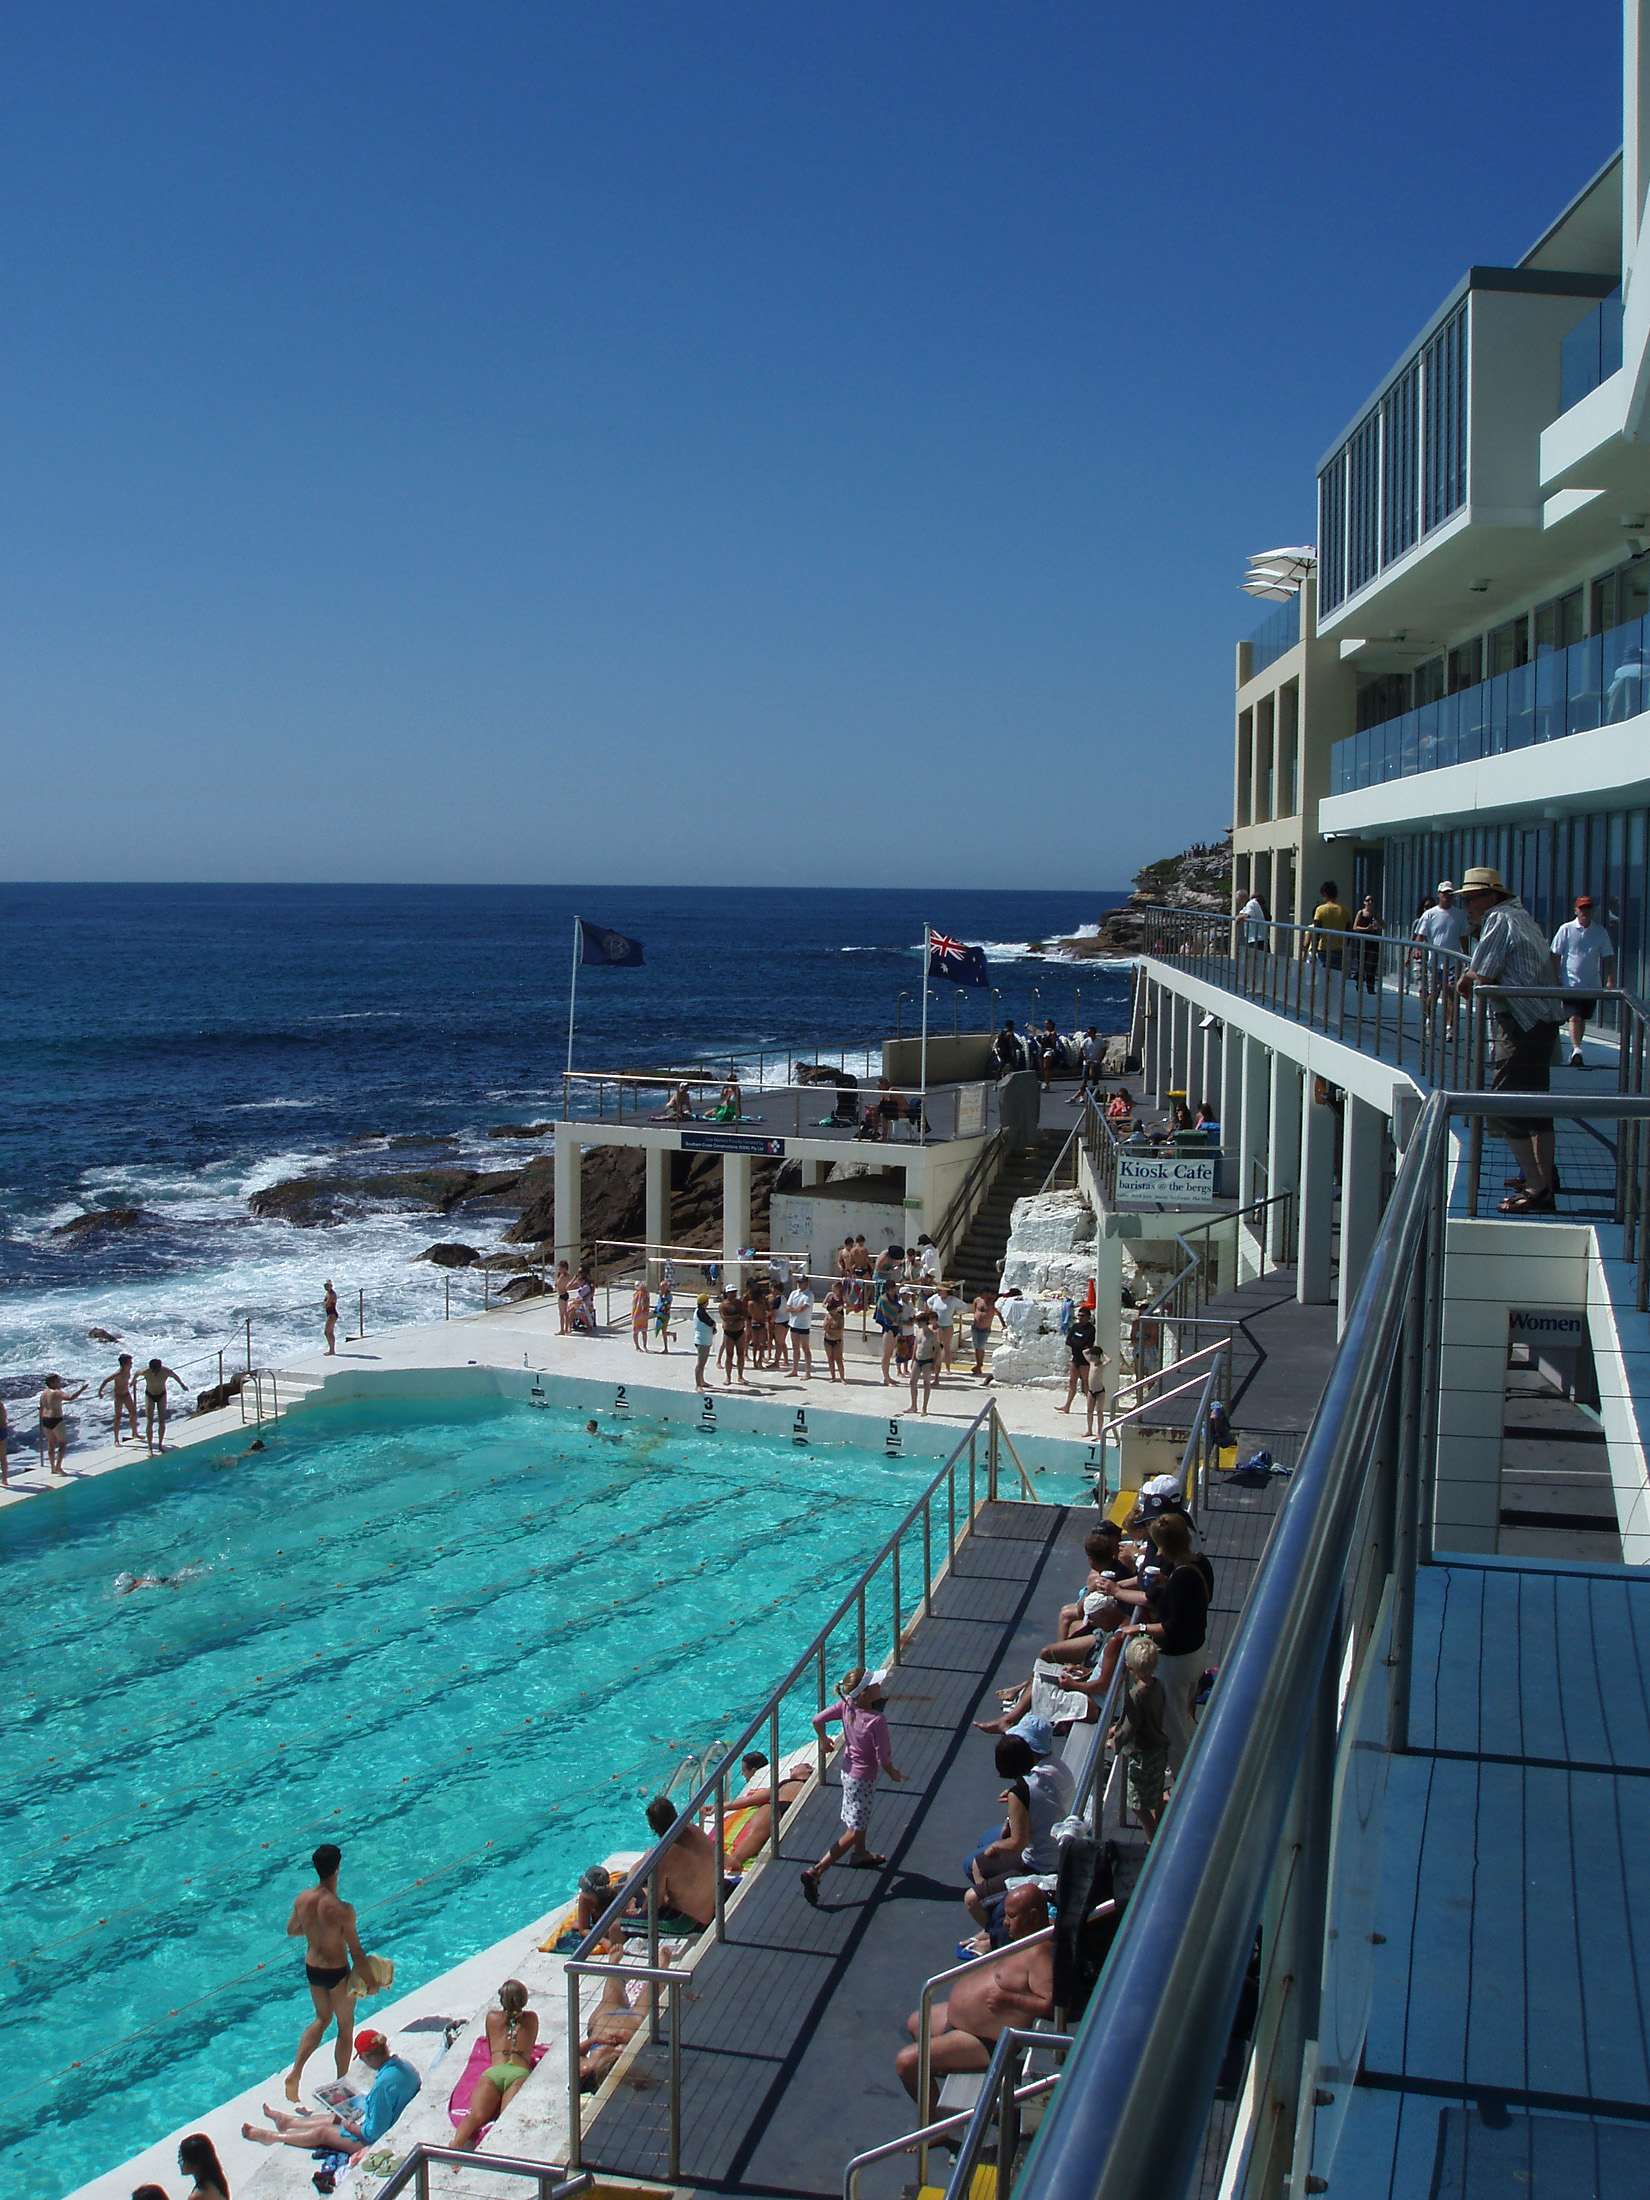 Tourists at Beautiful Tidal Swimming Pool and Sydneys Famous Bondi Beach in Australia. Captured with Blue Sky Background.